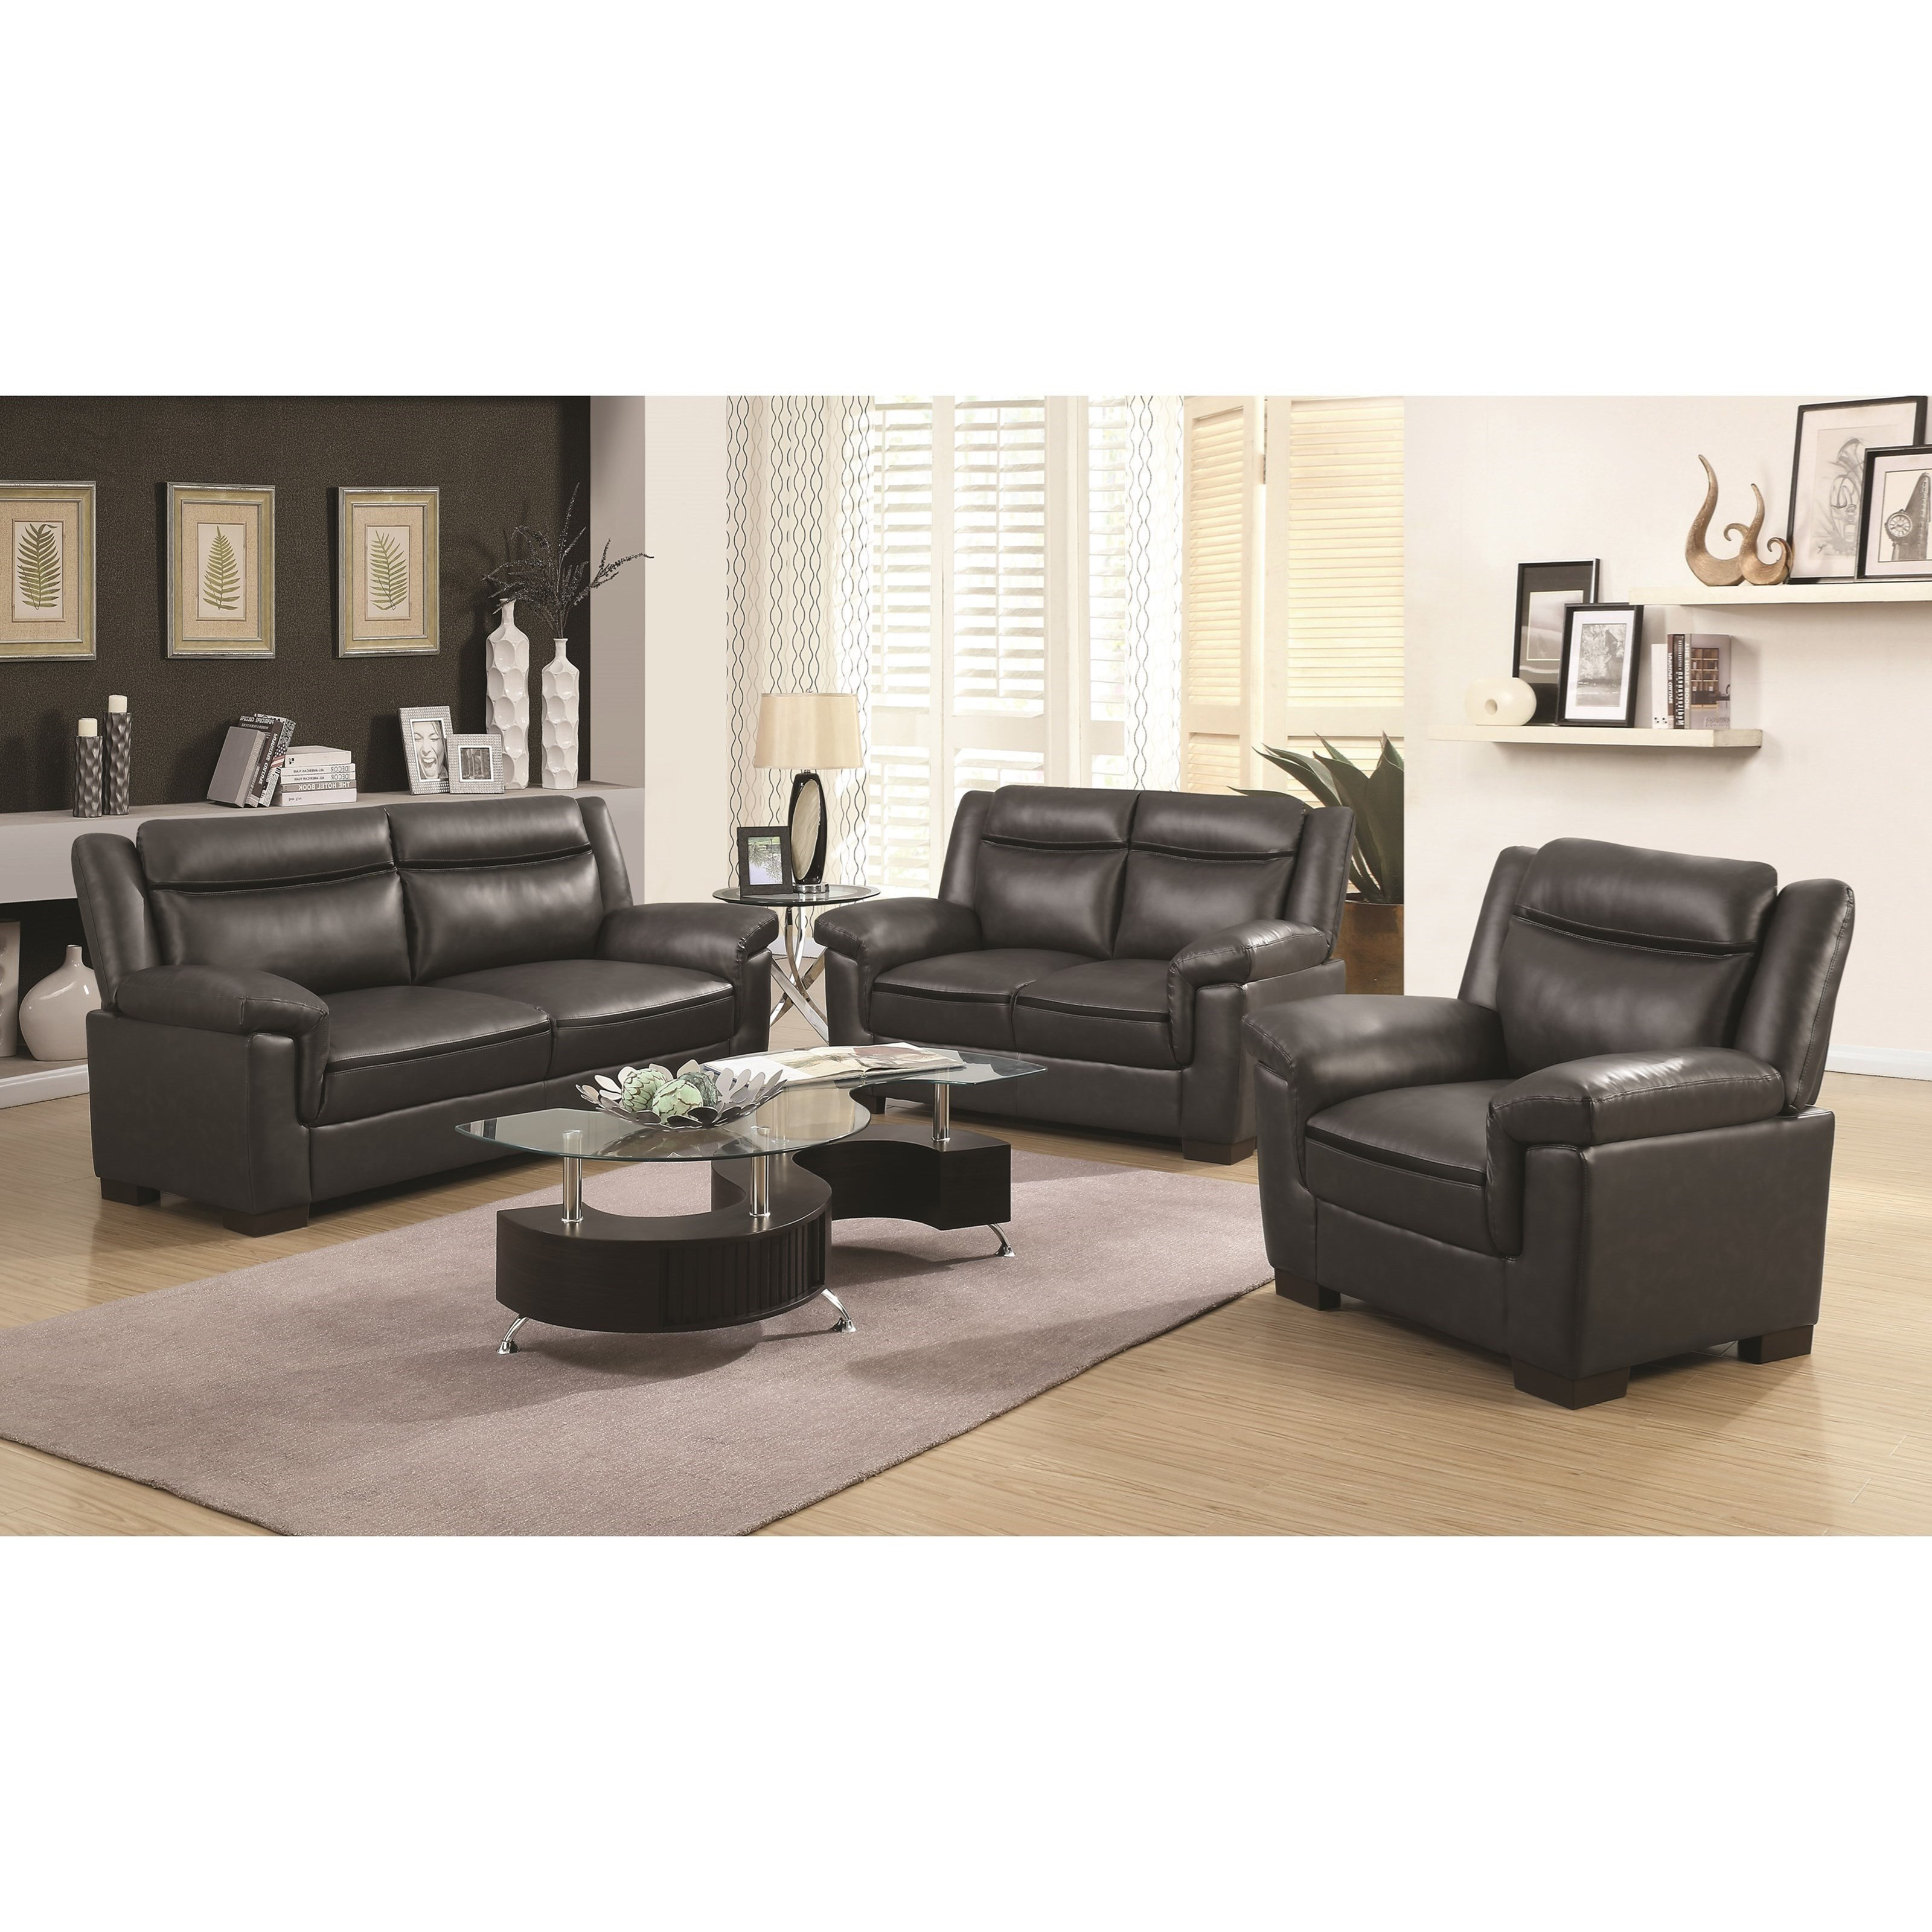 Arabella Stationary Living Room Group by Coaster at Standard Furniture